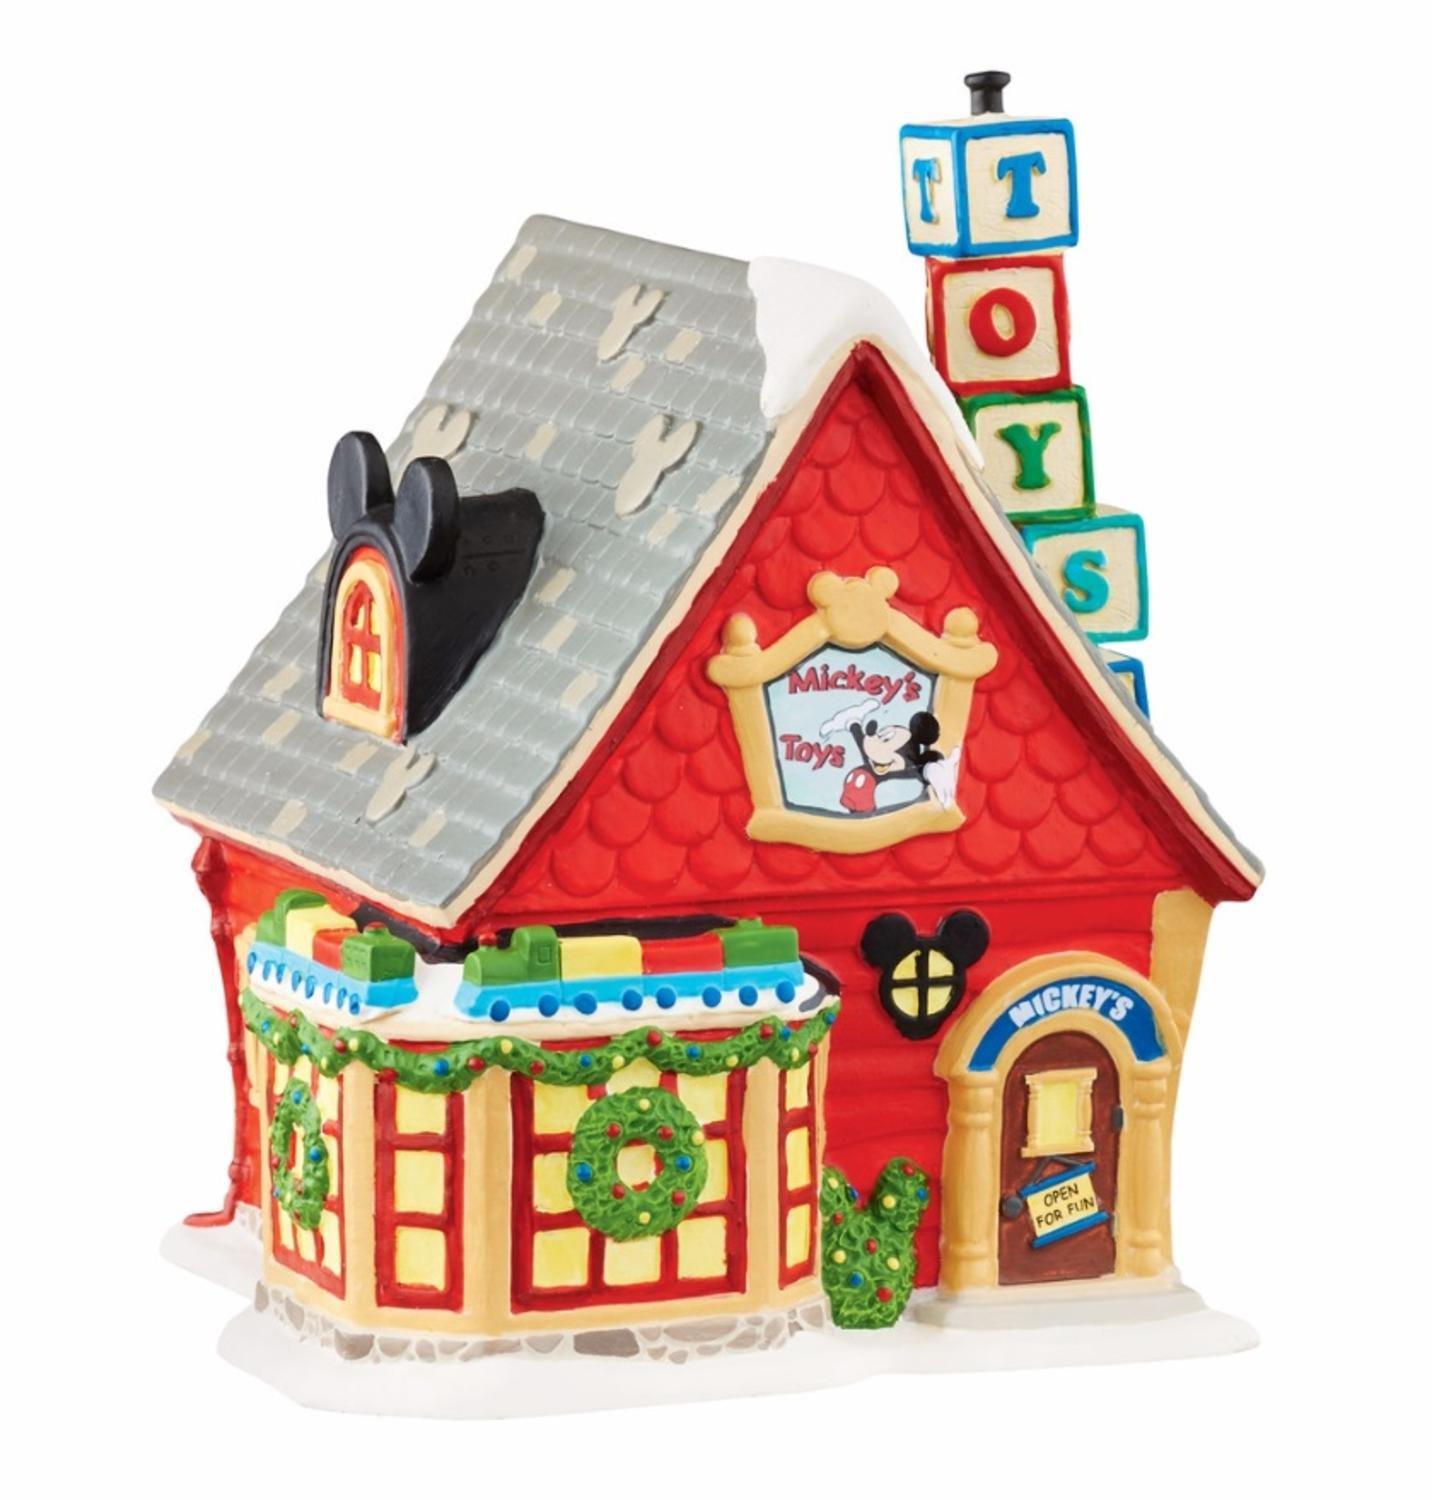 Department 56 Disney ''Mickey's Toy Store'' Christmas Porcelain Lighted Building #4047184